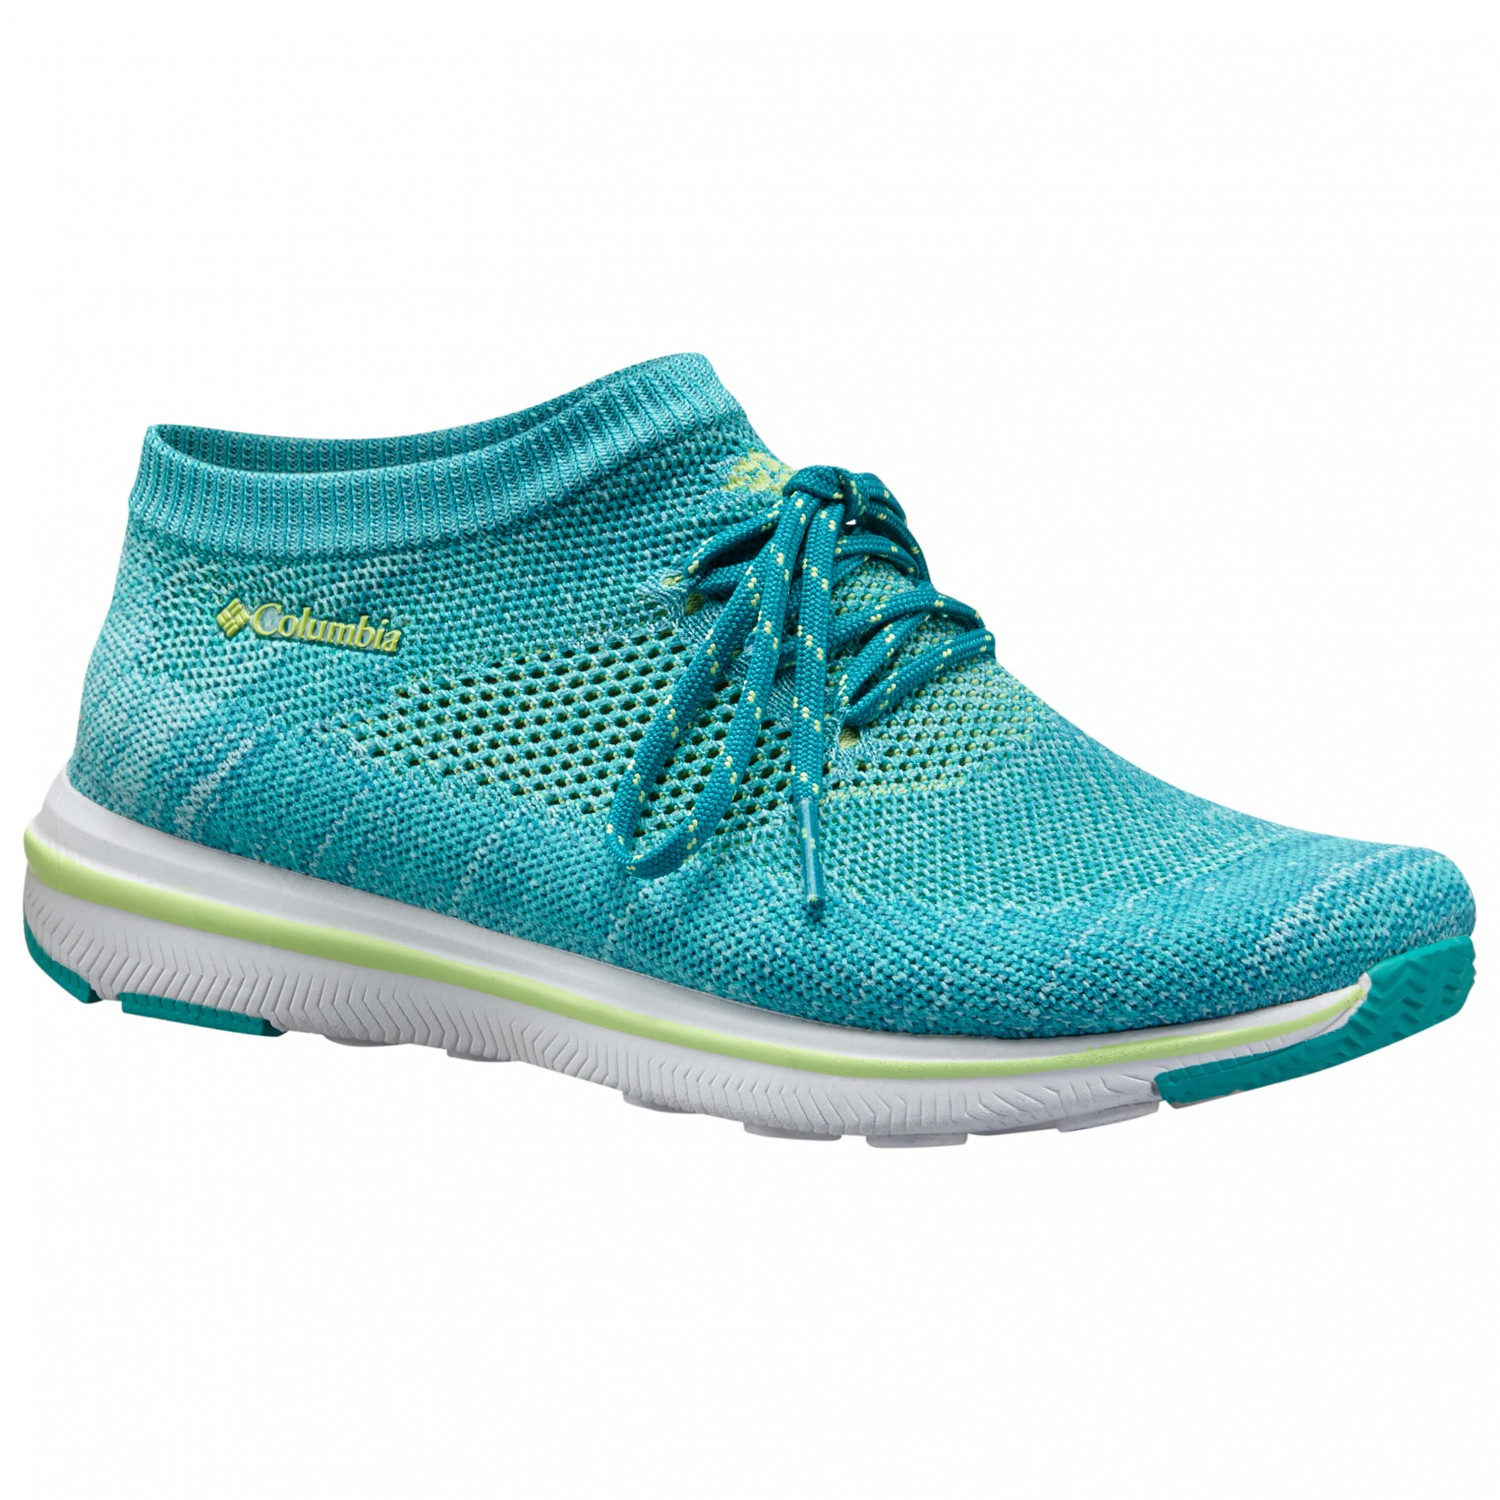 Buy Columbia Shoes Online Canada